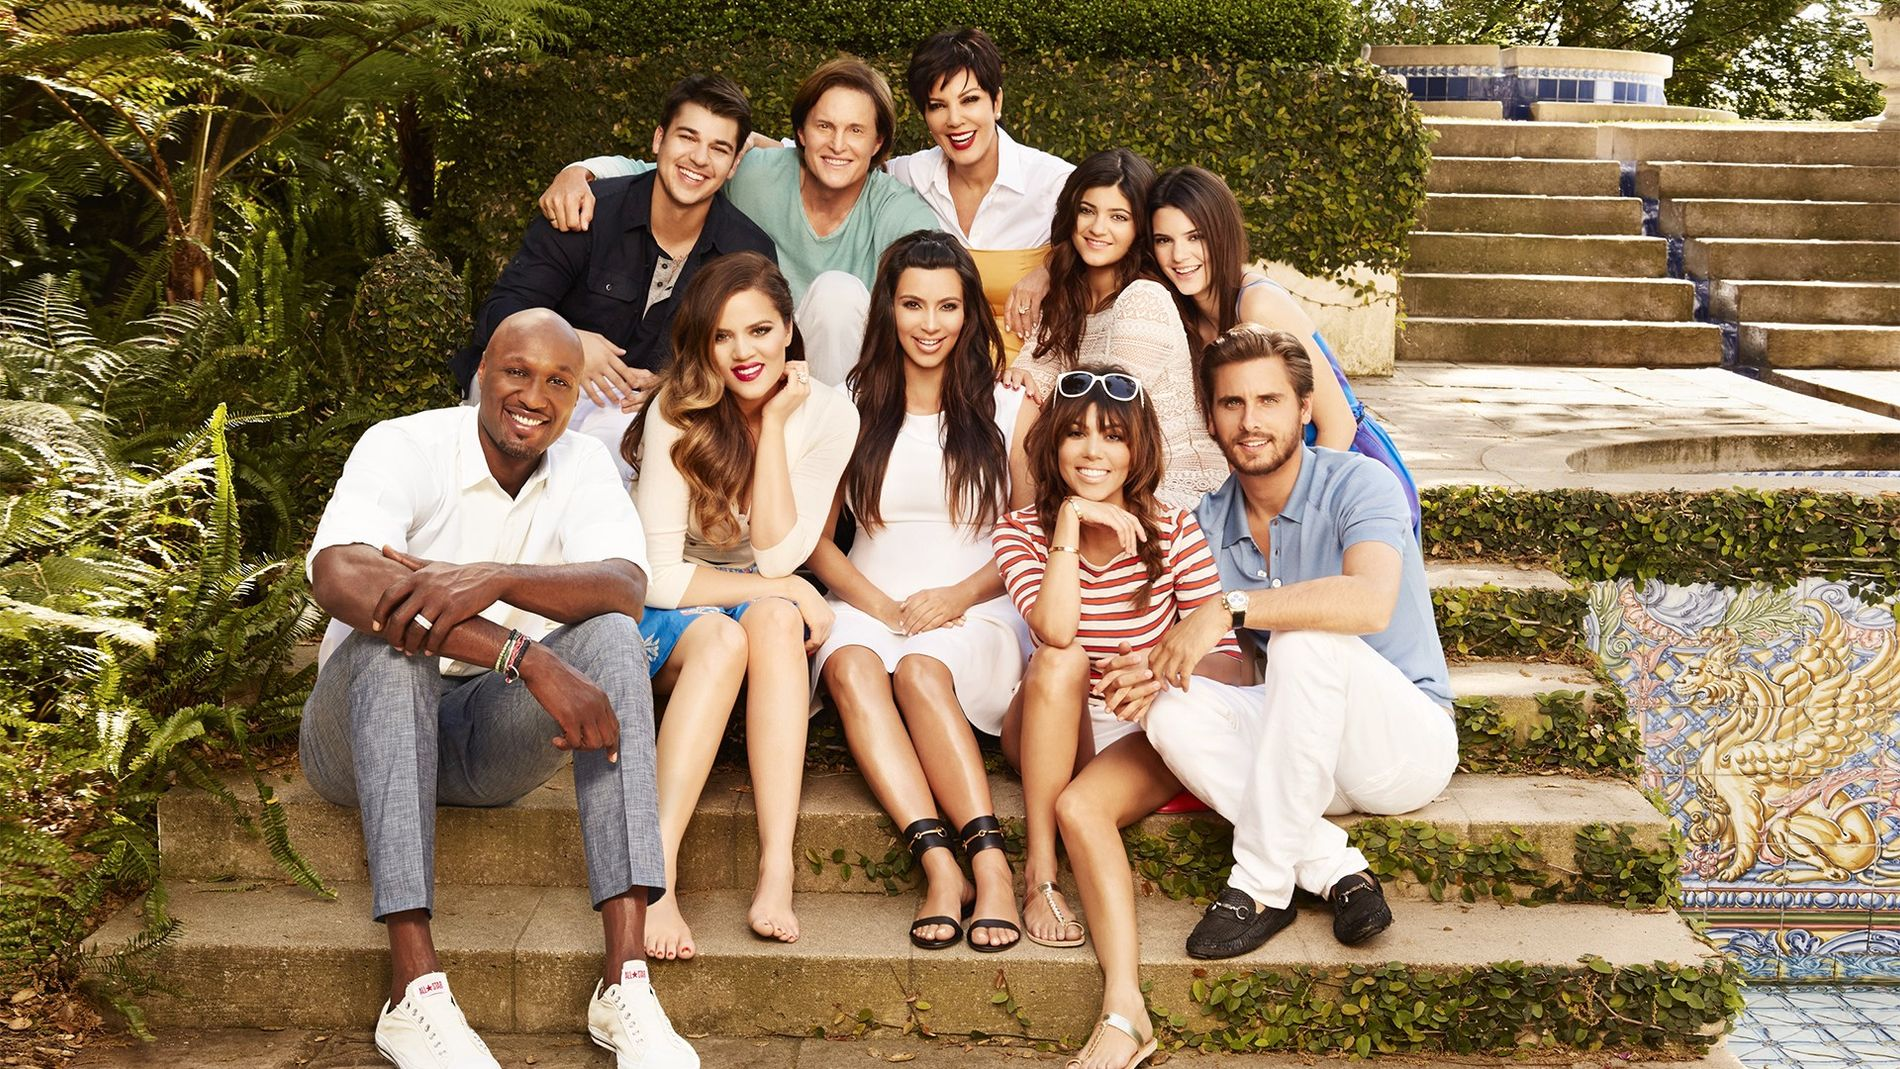 STORFAMILIE: Kardashian-familien i sesong 8 av «Keeping Up With the Kardashians».